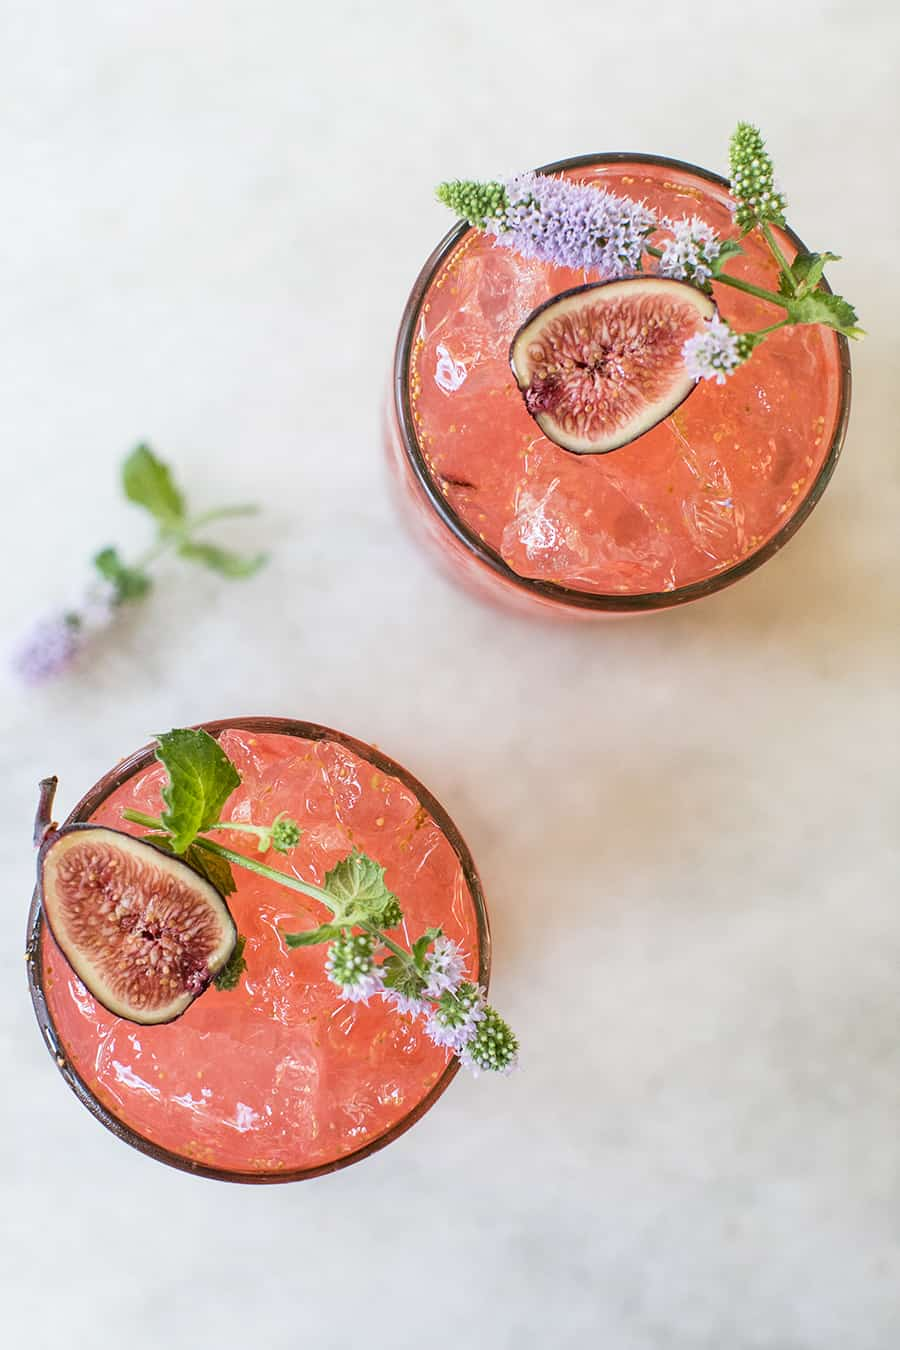 Pink cocktail with figs and edible flowers.